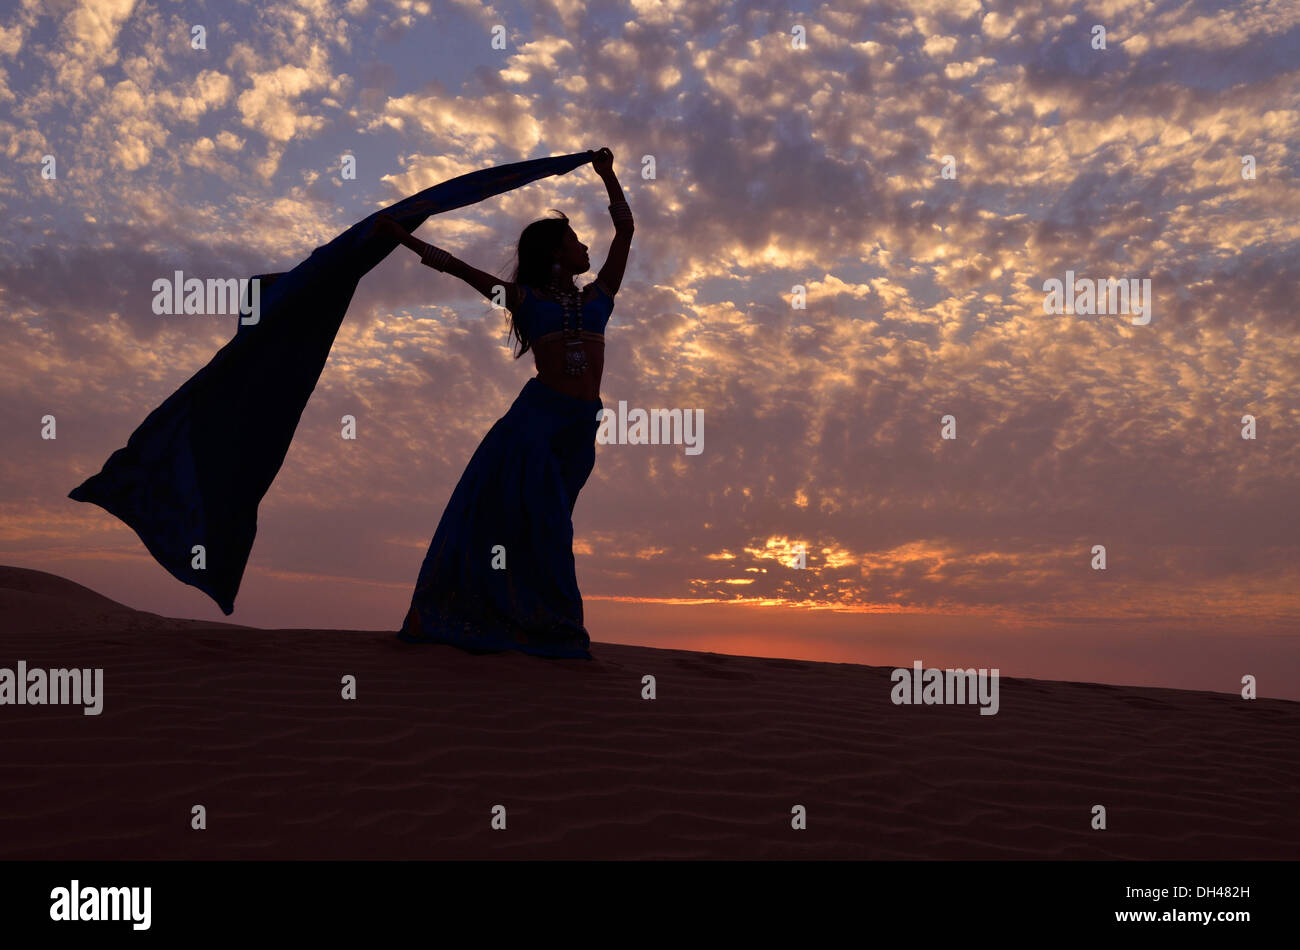 women saree sari dupatta scarf flying fluttering in the wind on desert sand dune Rajasthan India Asia - Stock Image